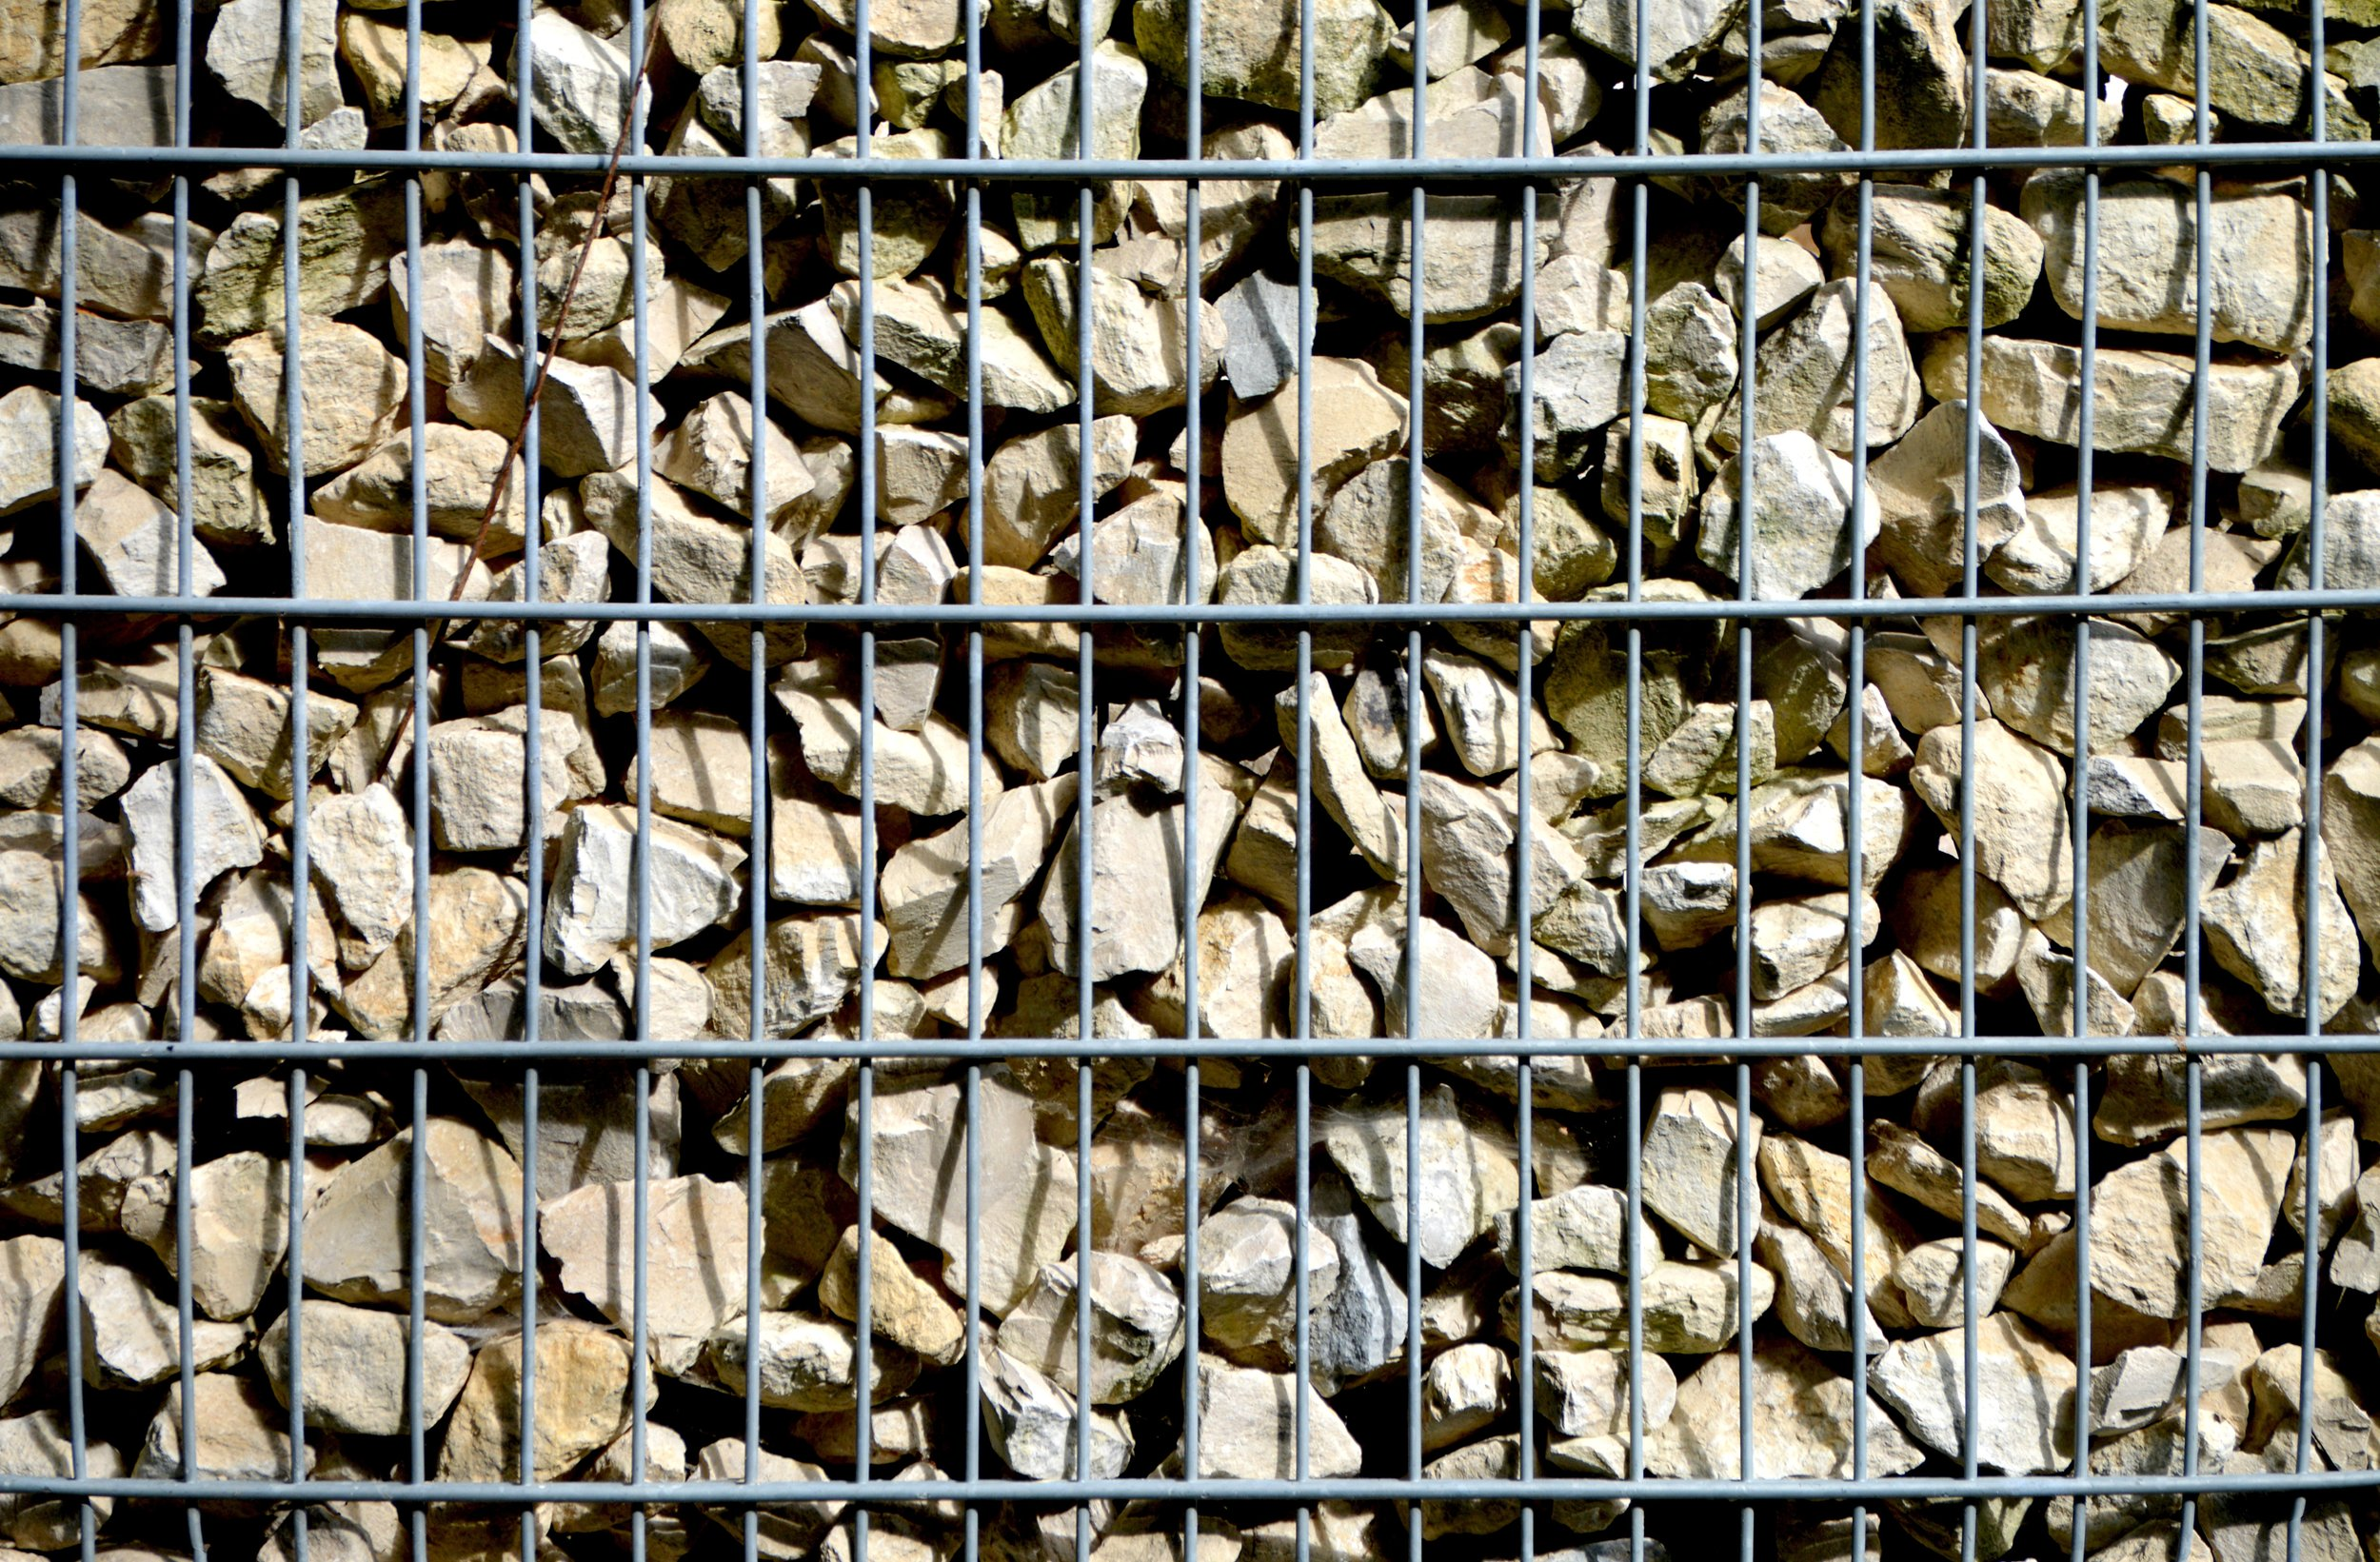 abstract-structure-wood-texture-wall-stone-570807-pxhere.com.jpg